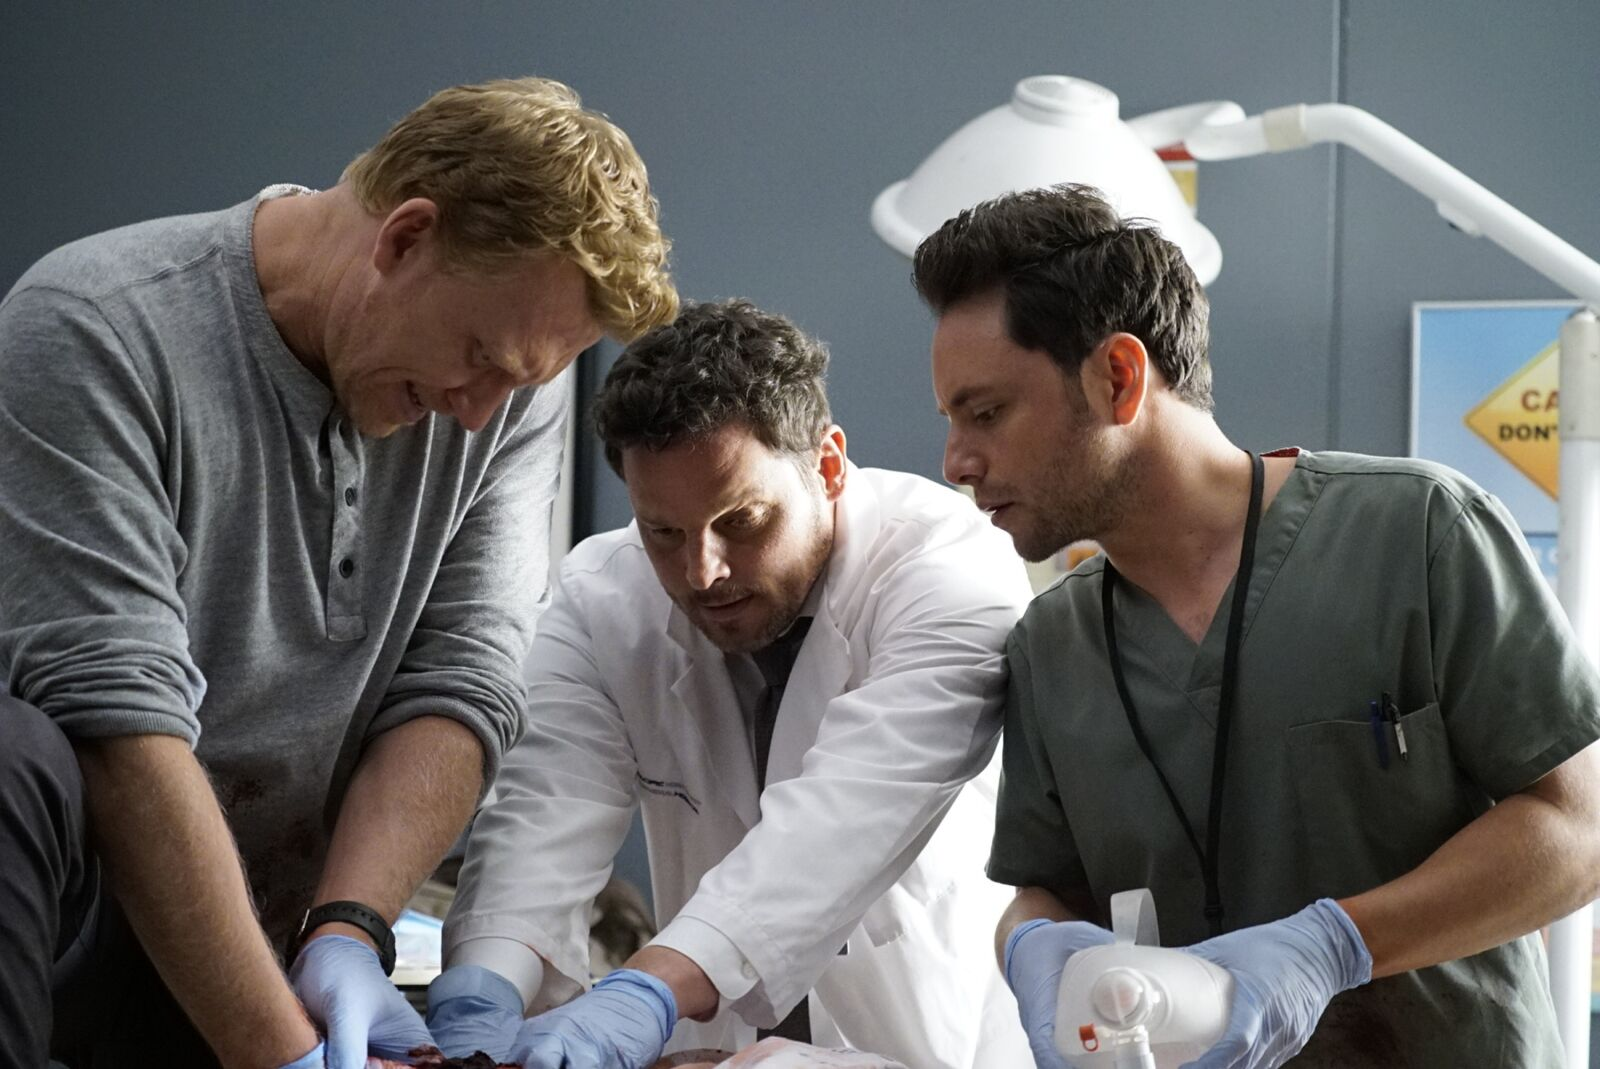 Grey's Anatomy: Has the Pac-North storyline been completely underutilized?